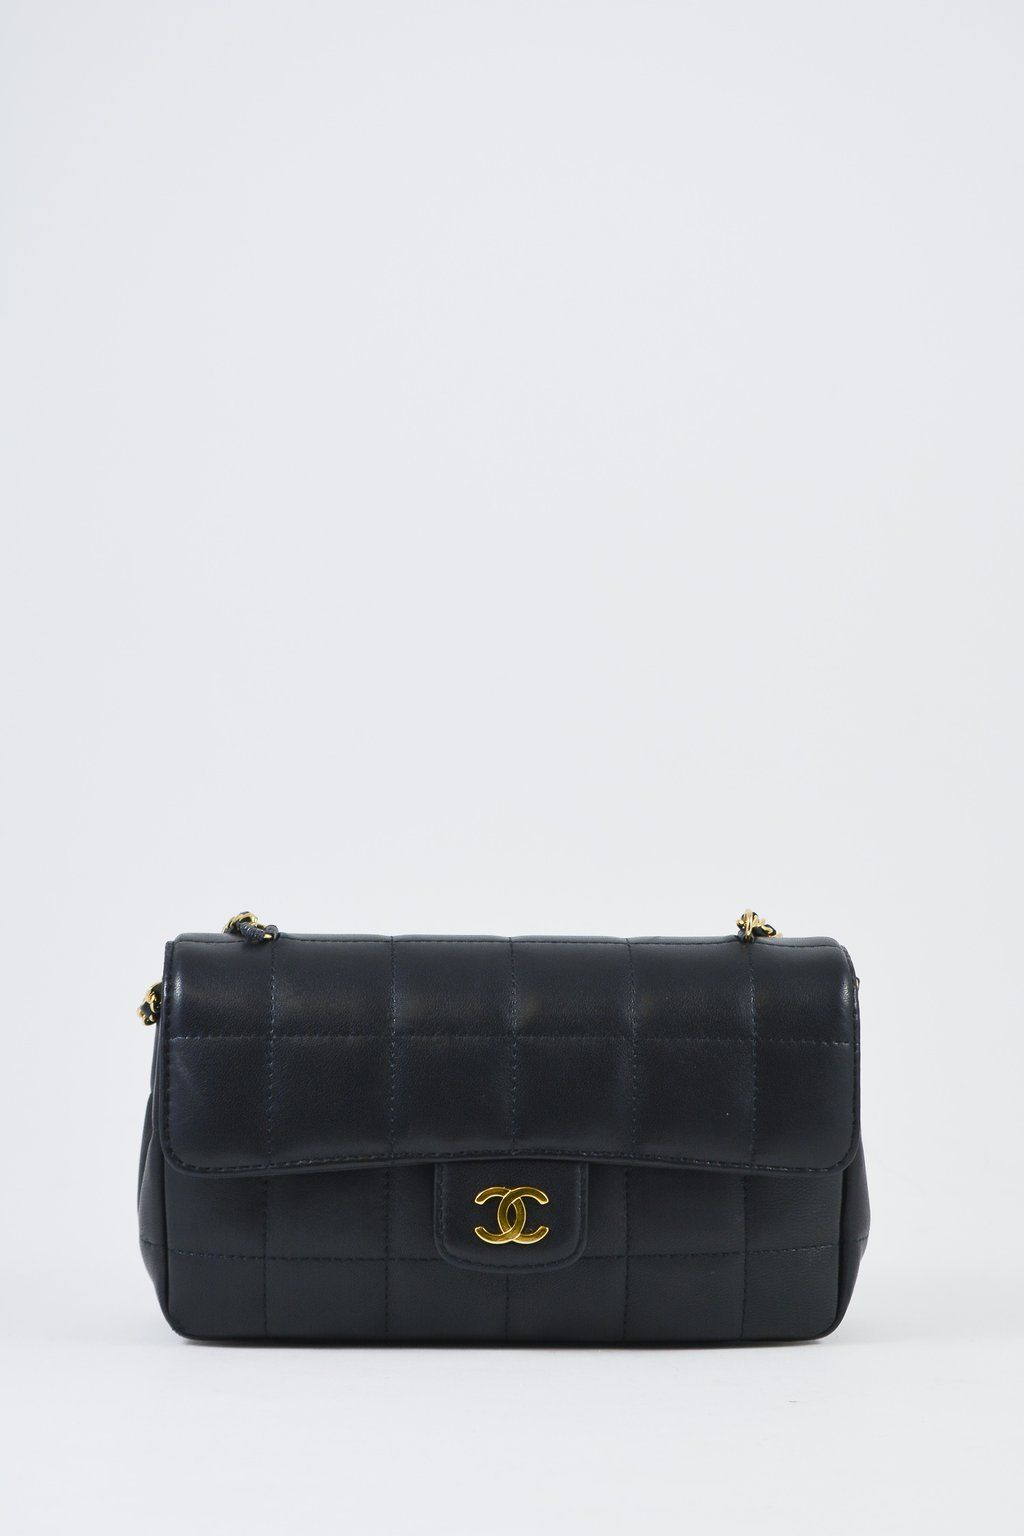 29d7aaf093d8 Chanel mini quilted leather flap shoulder bag in black. Rolled leather and  chain shouldr strap